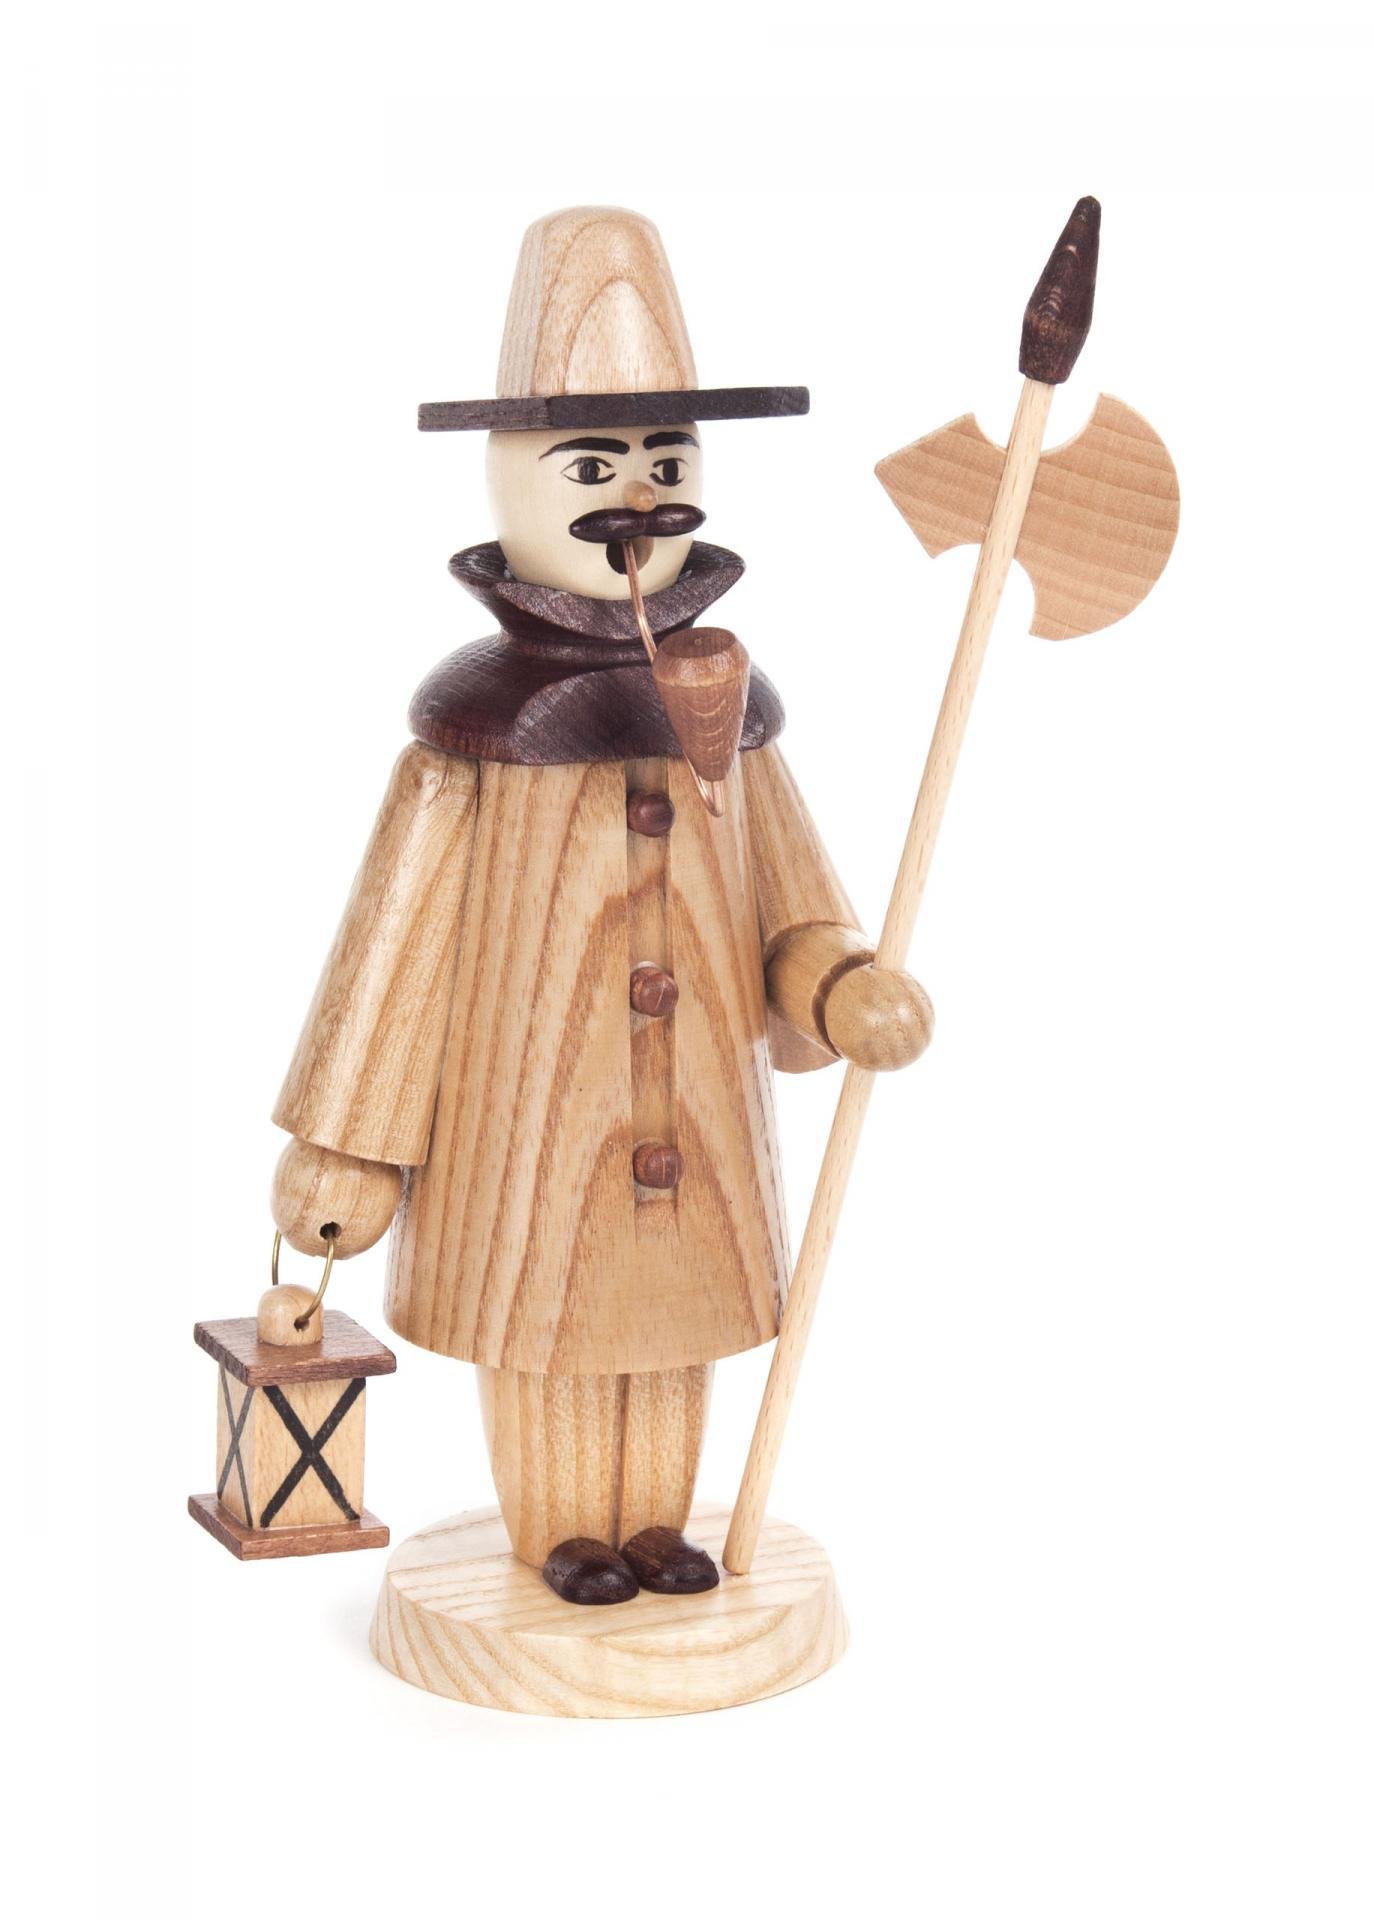 Wooden Figurines – Night Watchman